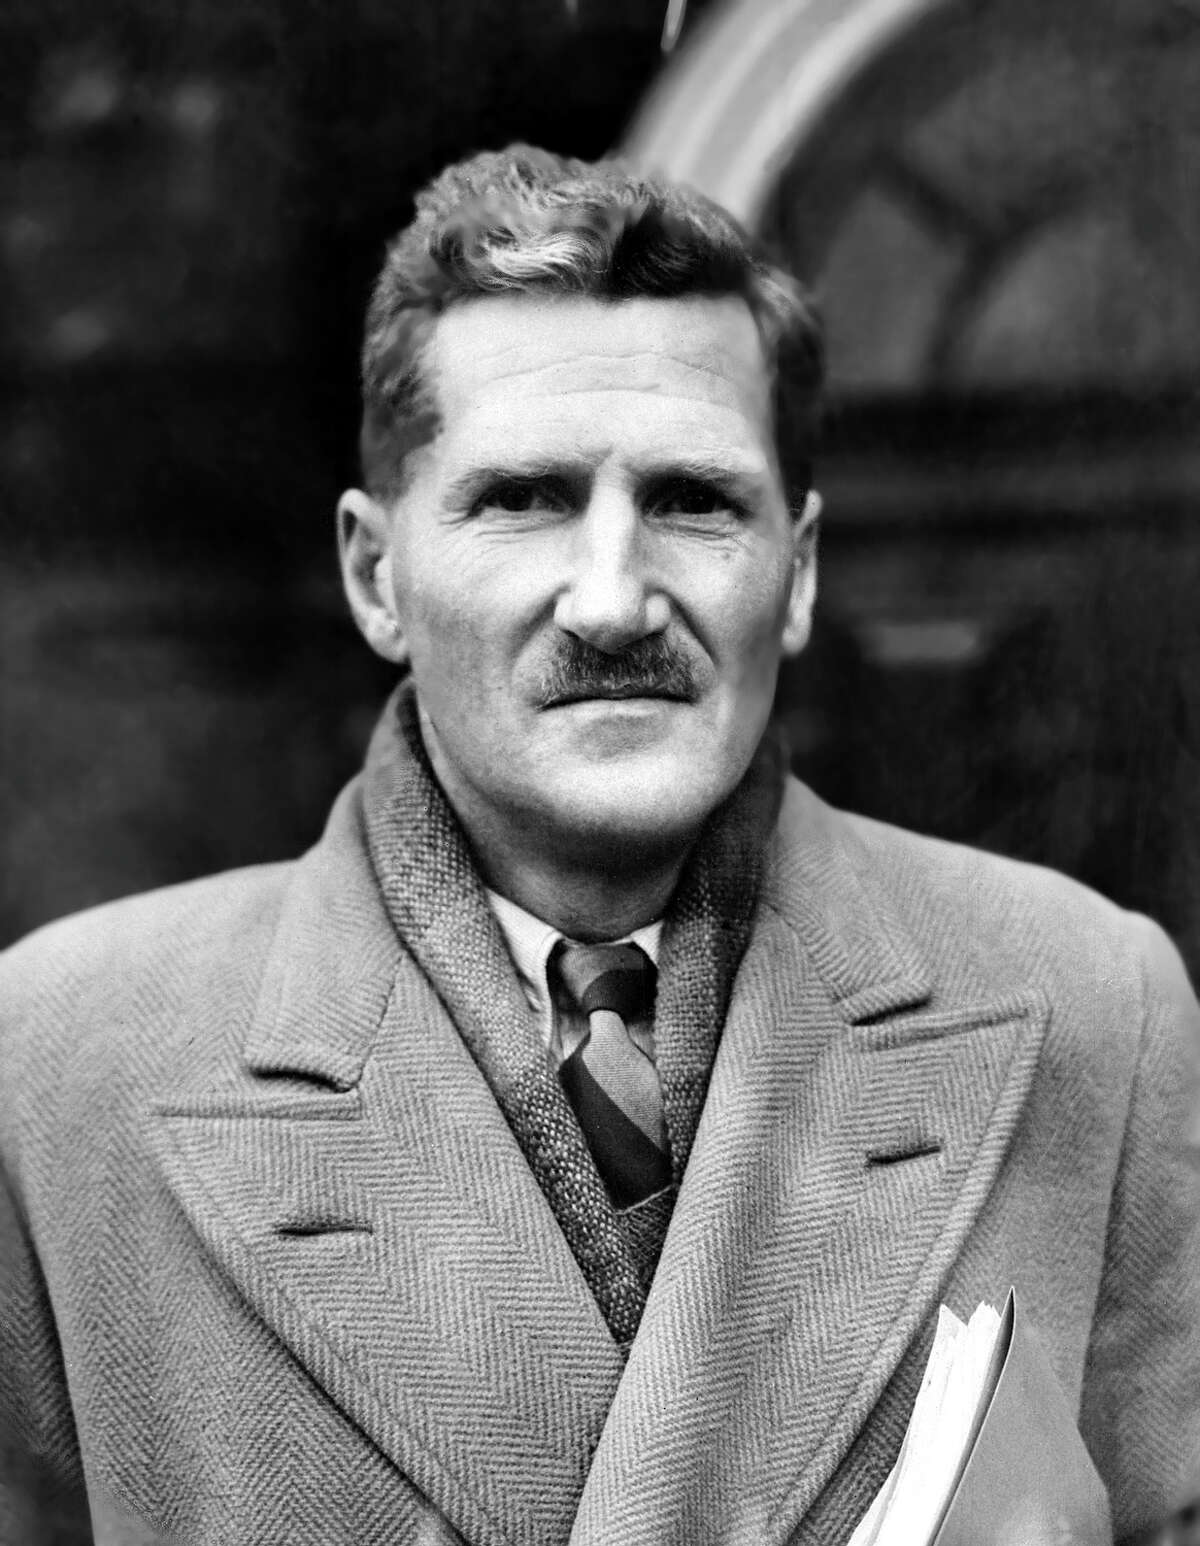 Baron John Hunt, British mountaineer, born in 1910 in Malborough, Wiltshire. A British army officer, Hunt saw military and mountaineering service in India and Europe, and in 1953 led the first successful expedition to Mt. Everest.